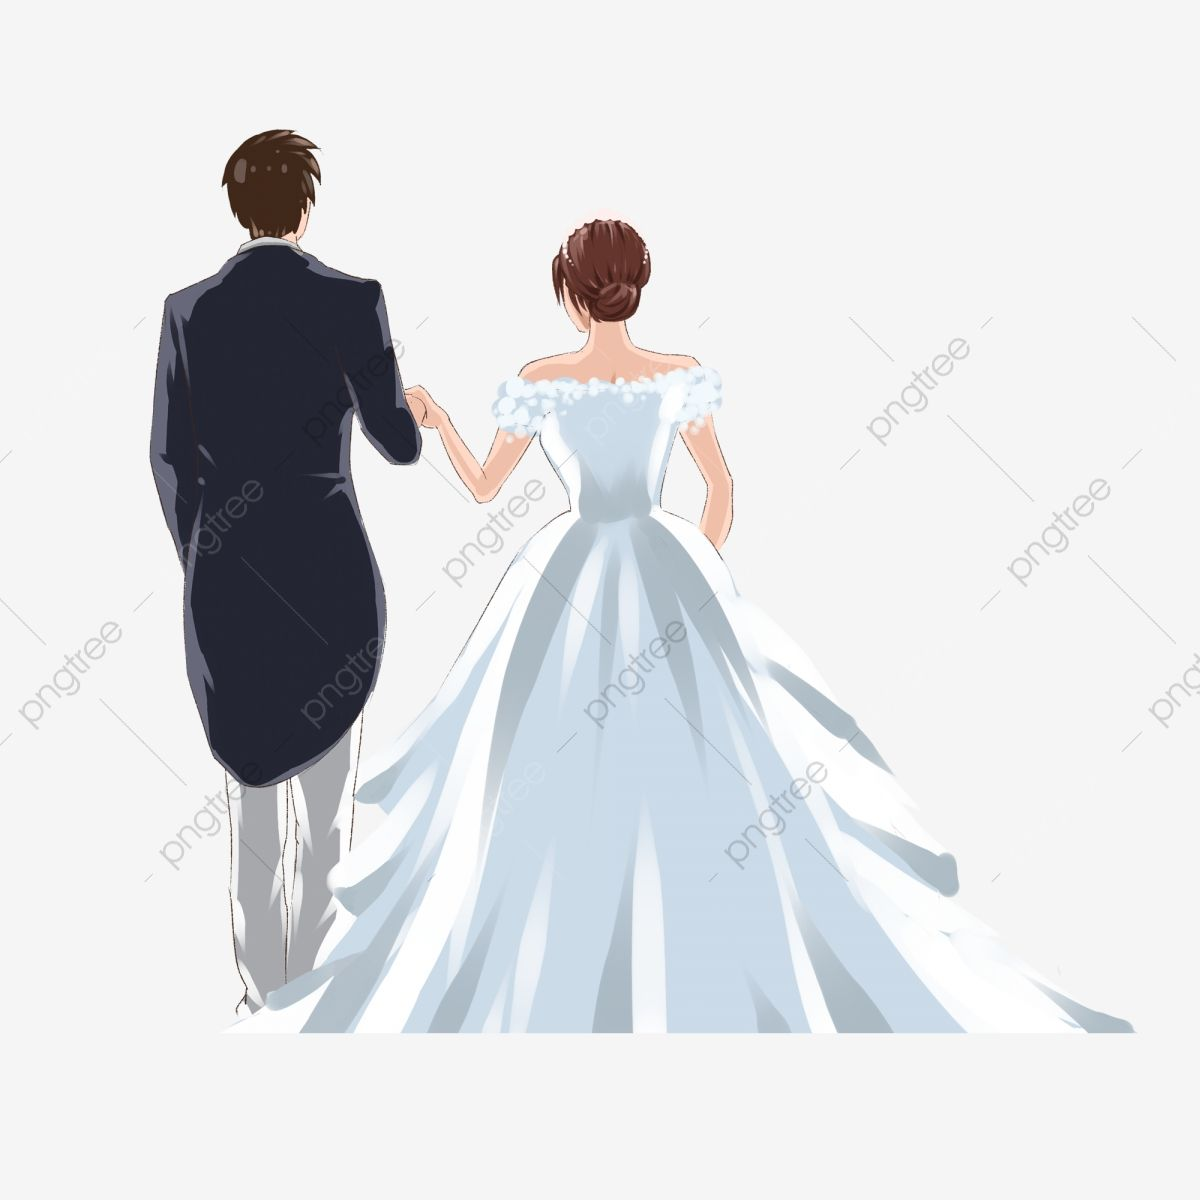 Back View Of Couple In Wedding Dress Holding Hands Bride Clipart Wearing A Dress Holding Hands Png Transparent Clipart Image And Psd File For Free Download Invitaciones Dibujos